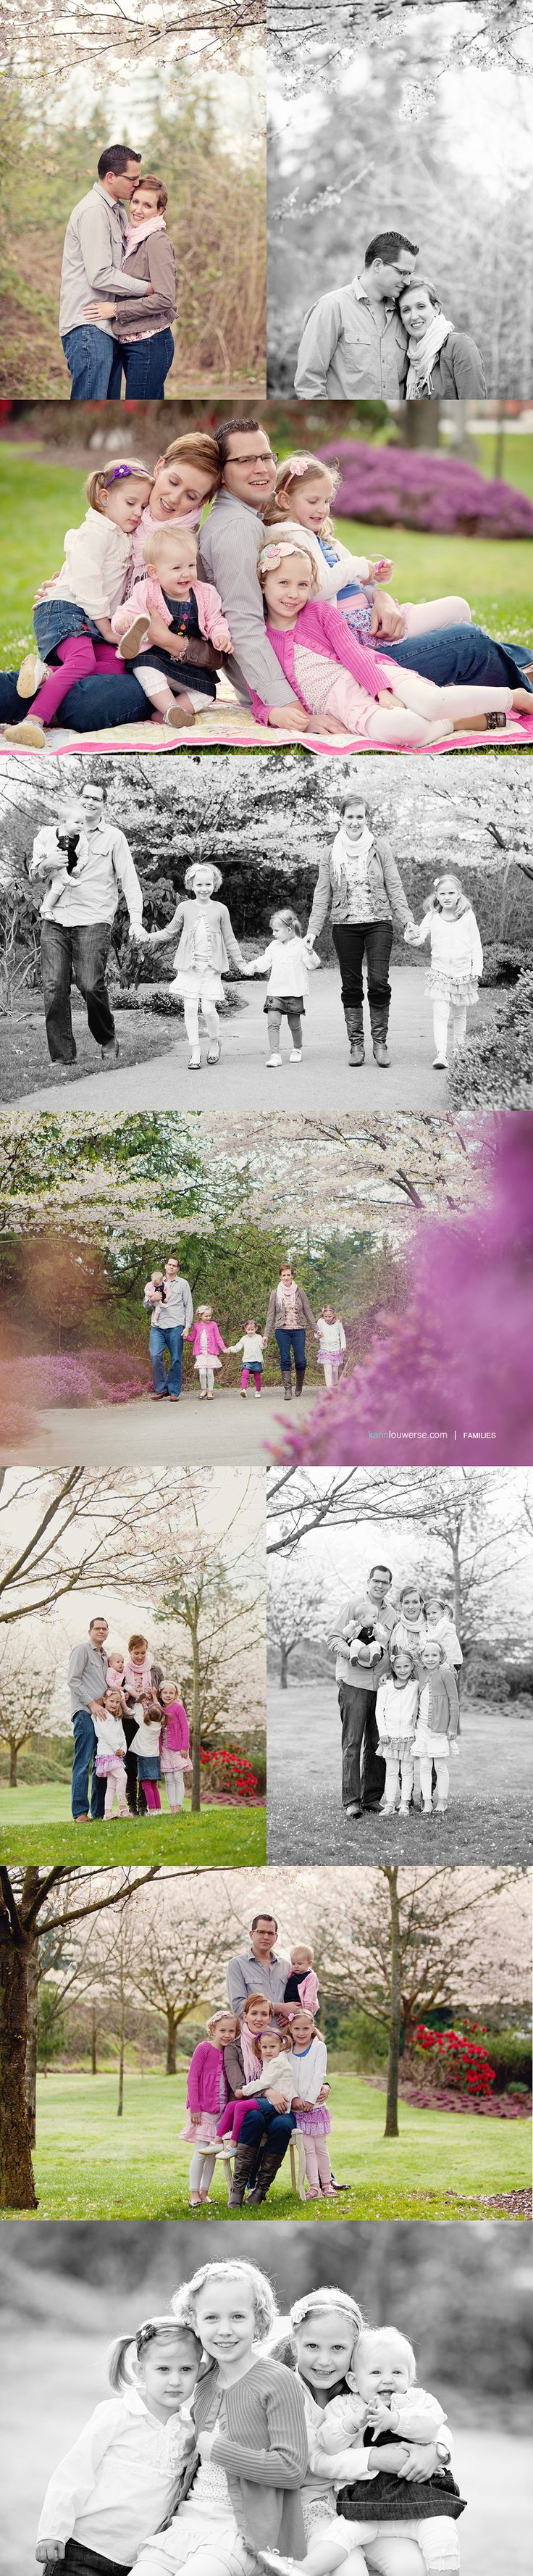 Family Portrait Idea~  Love the pop of pink